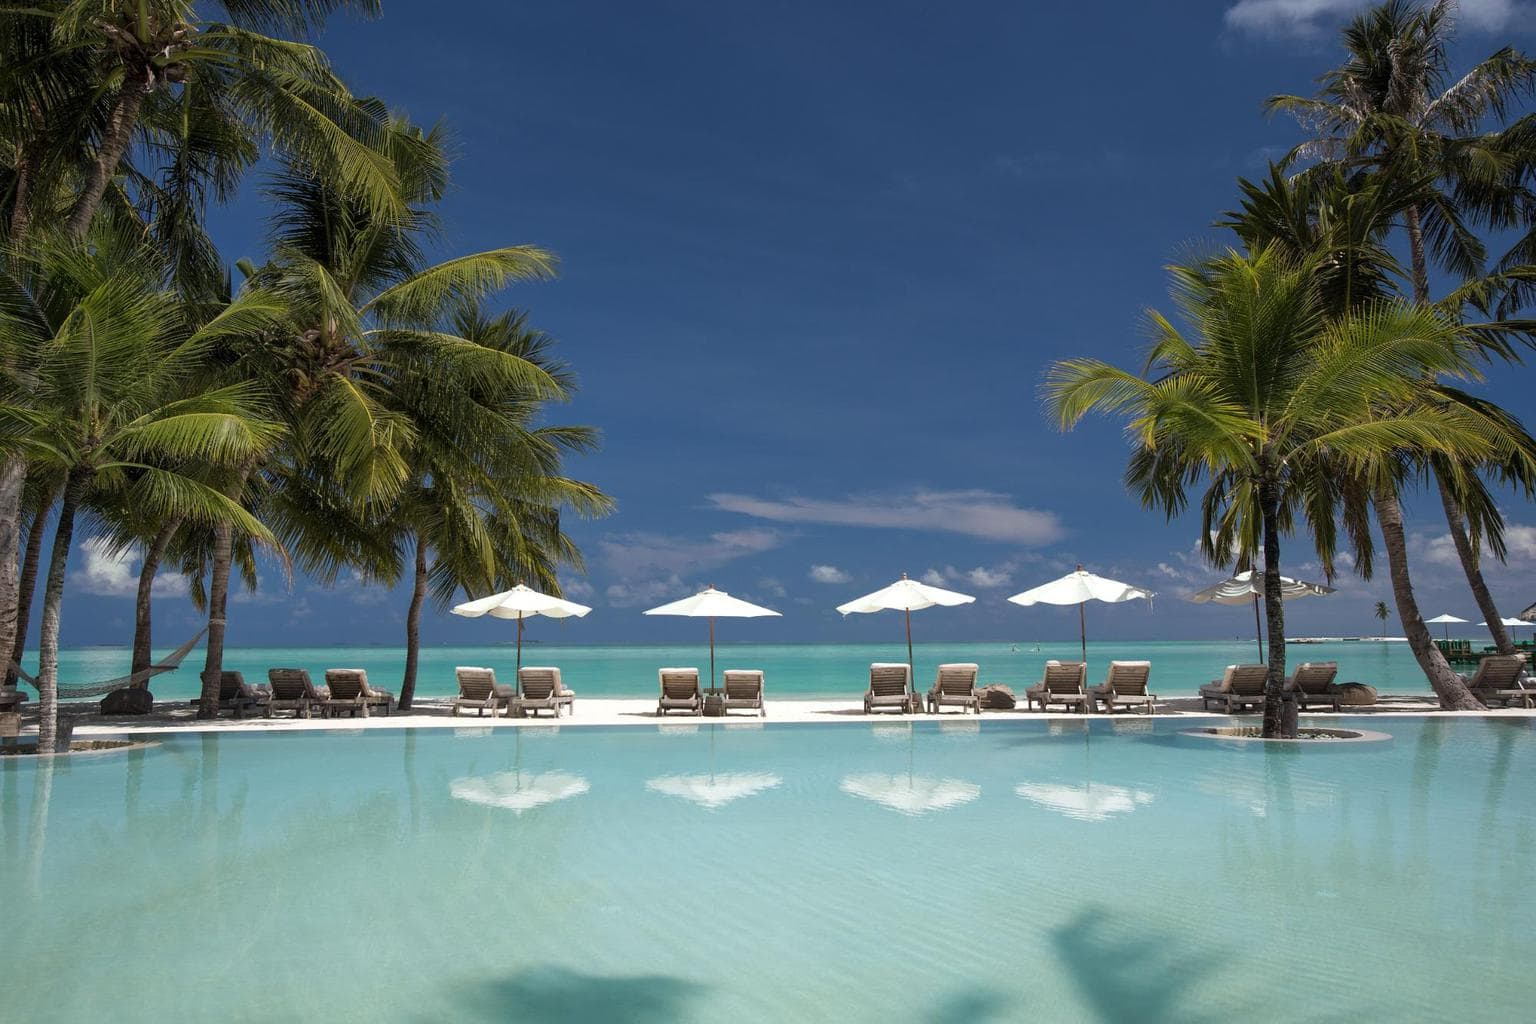 Gili Lankanfushi swimming pool - Courtesy of Gili Lankanfushi